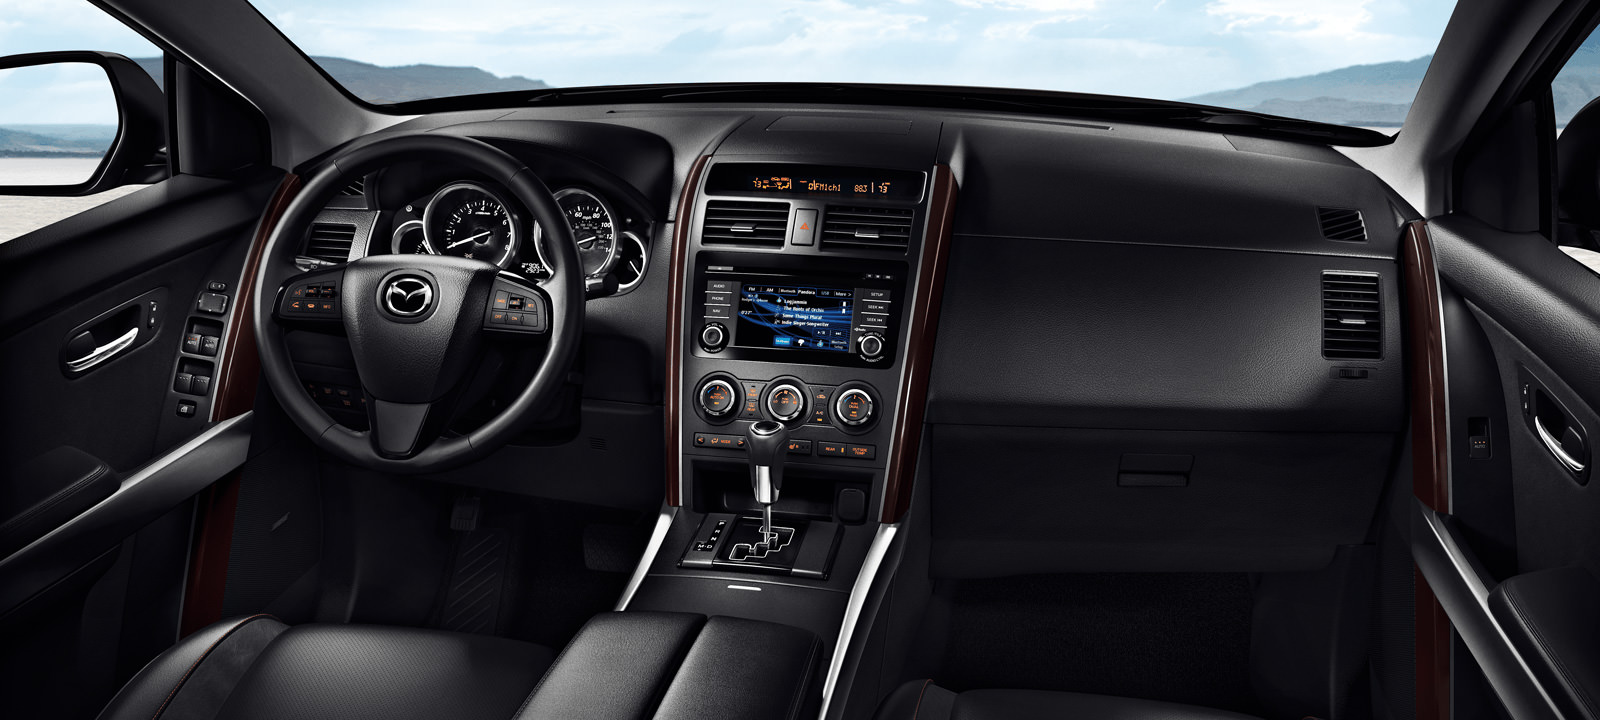 New Mazda CX-9 Interior main image